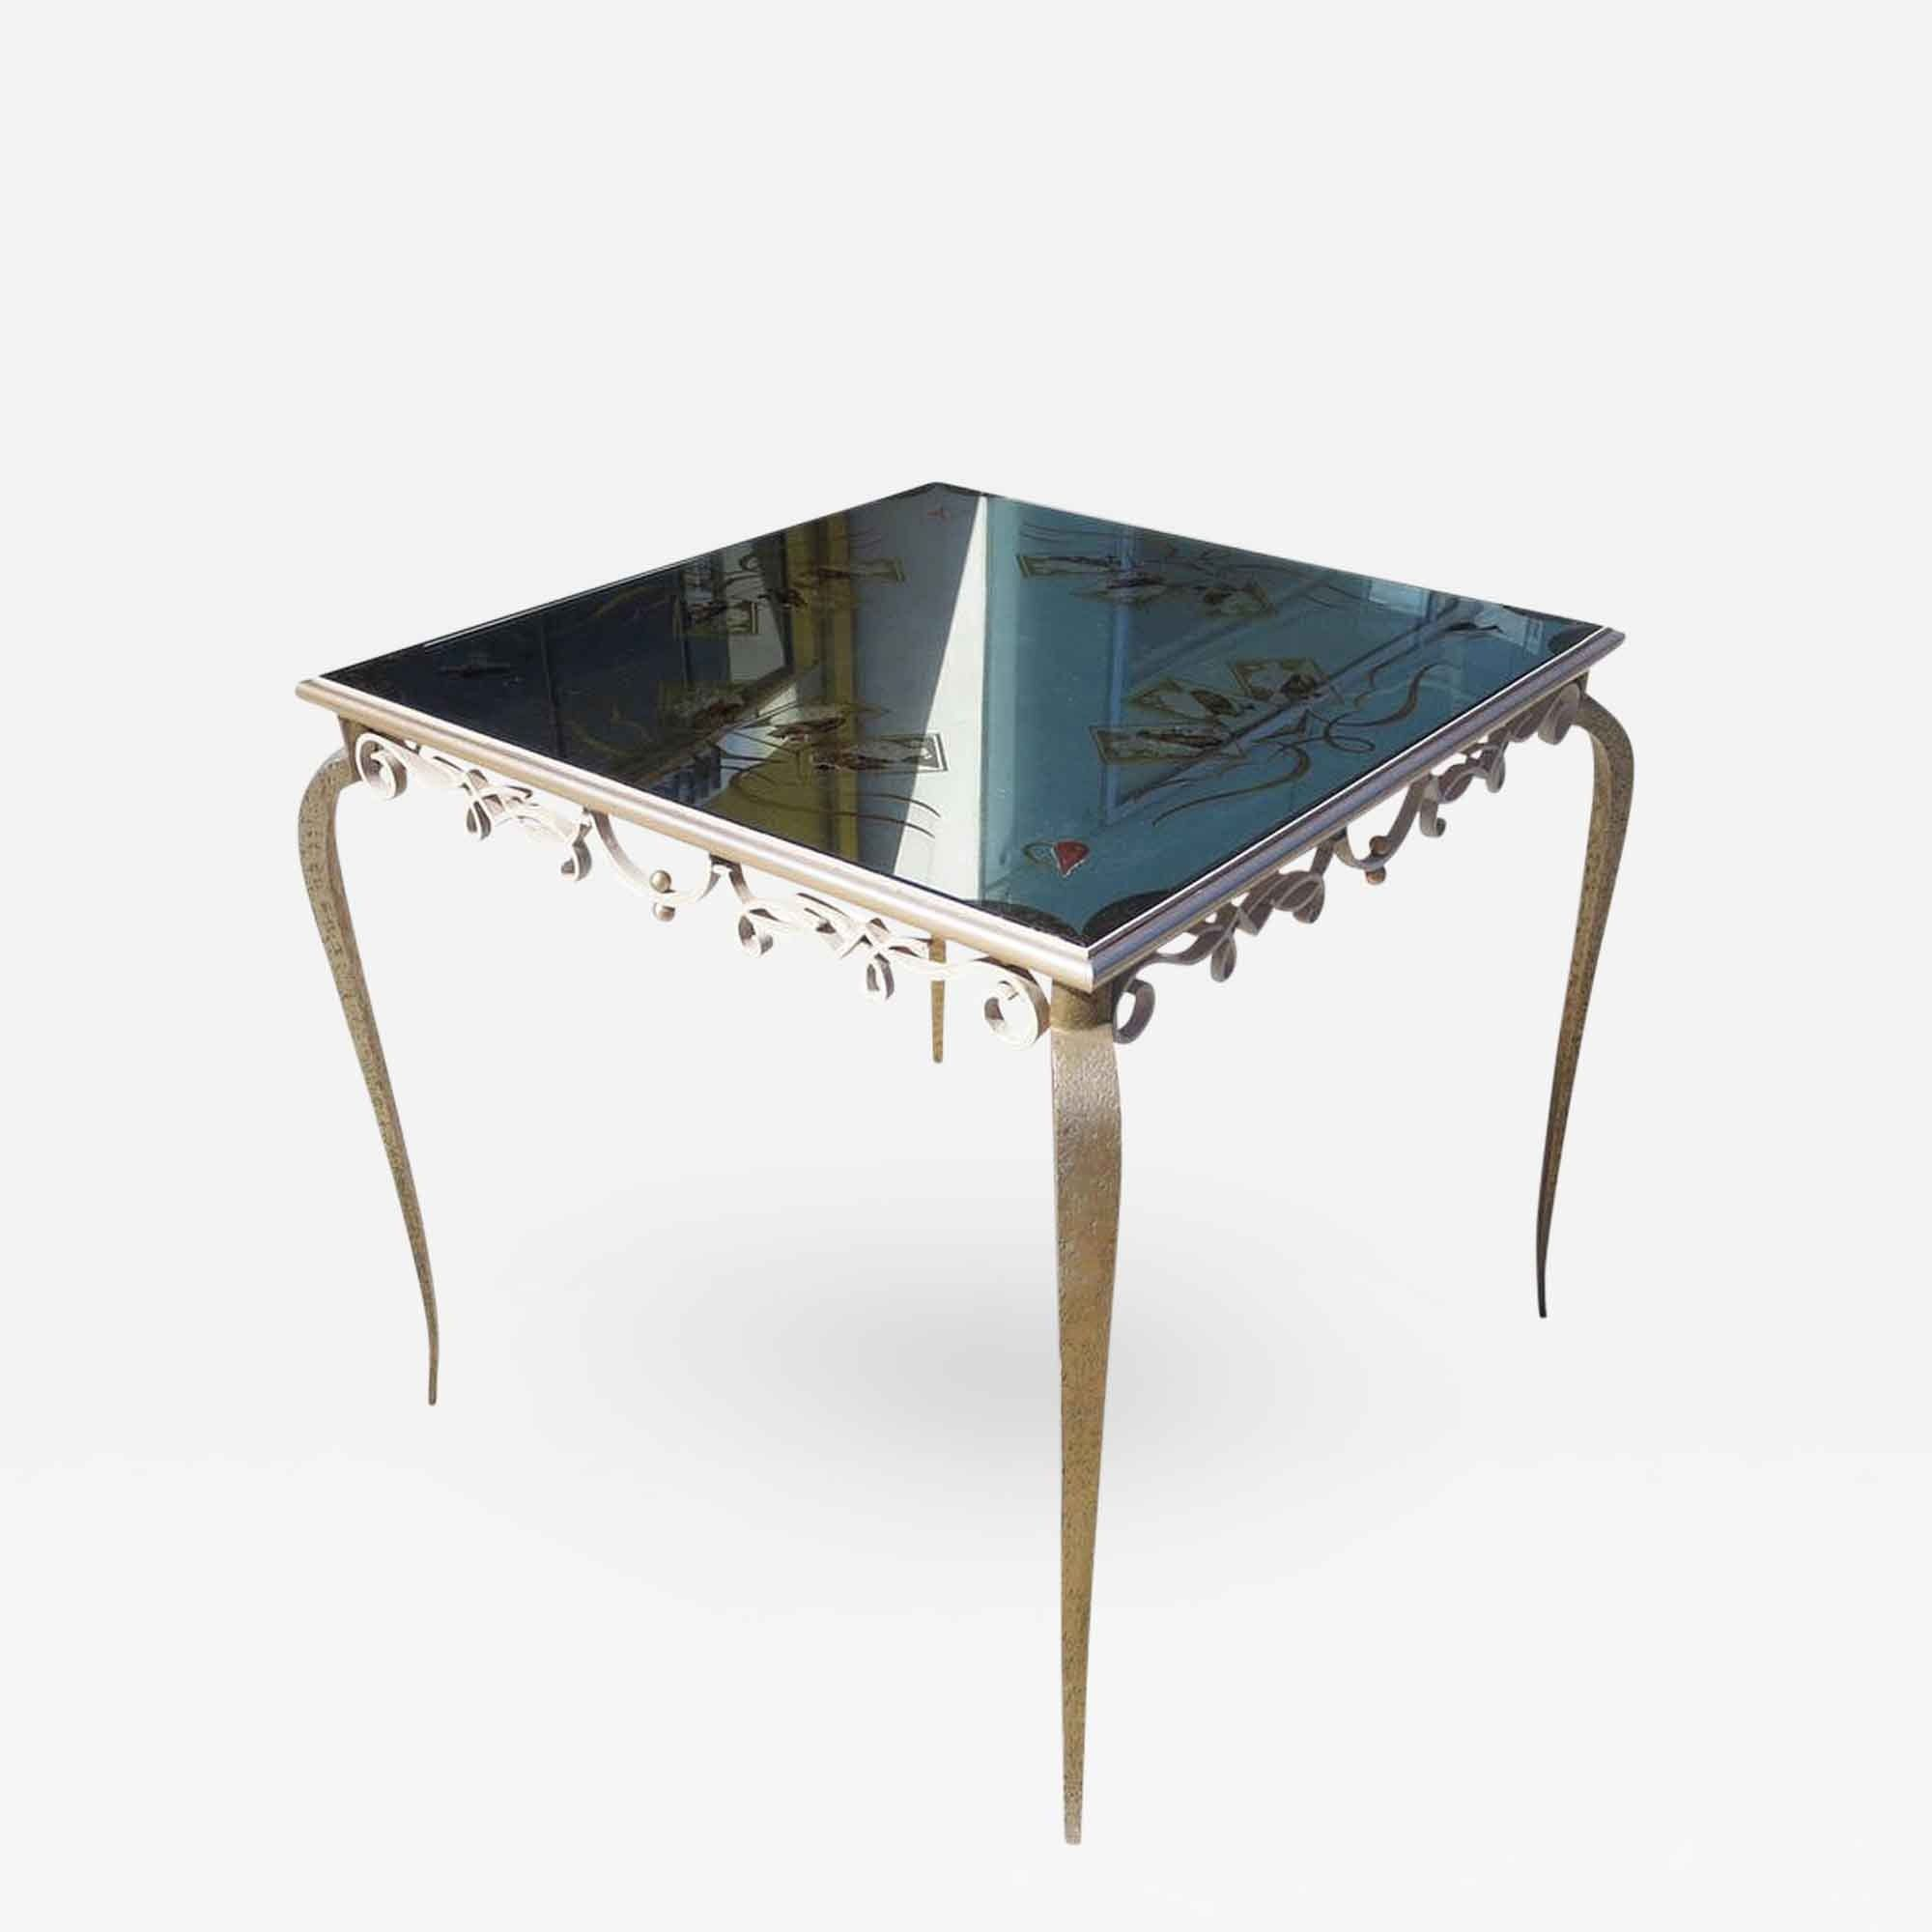 Eglomise Mirrored Game Table In The Manner Of Rene Drouet By Incollect 4 800 Retail Price Mirror Game Table Games Table